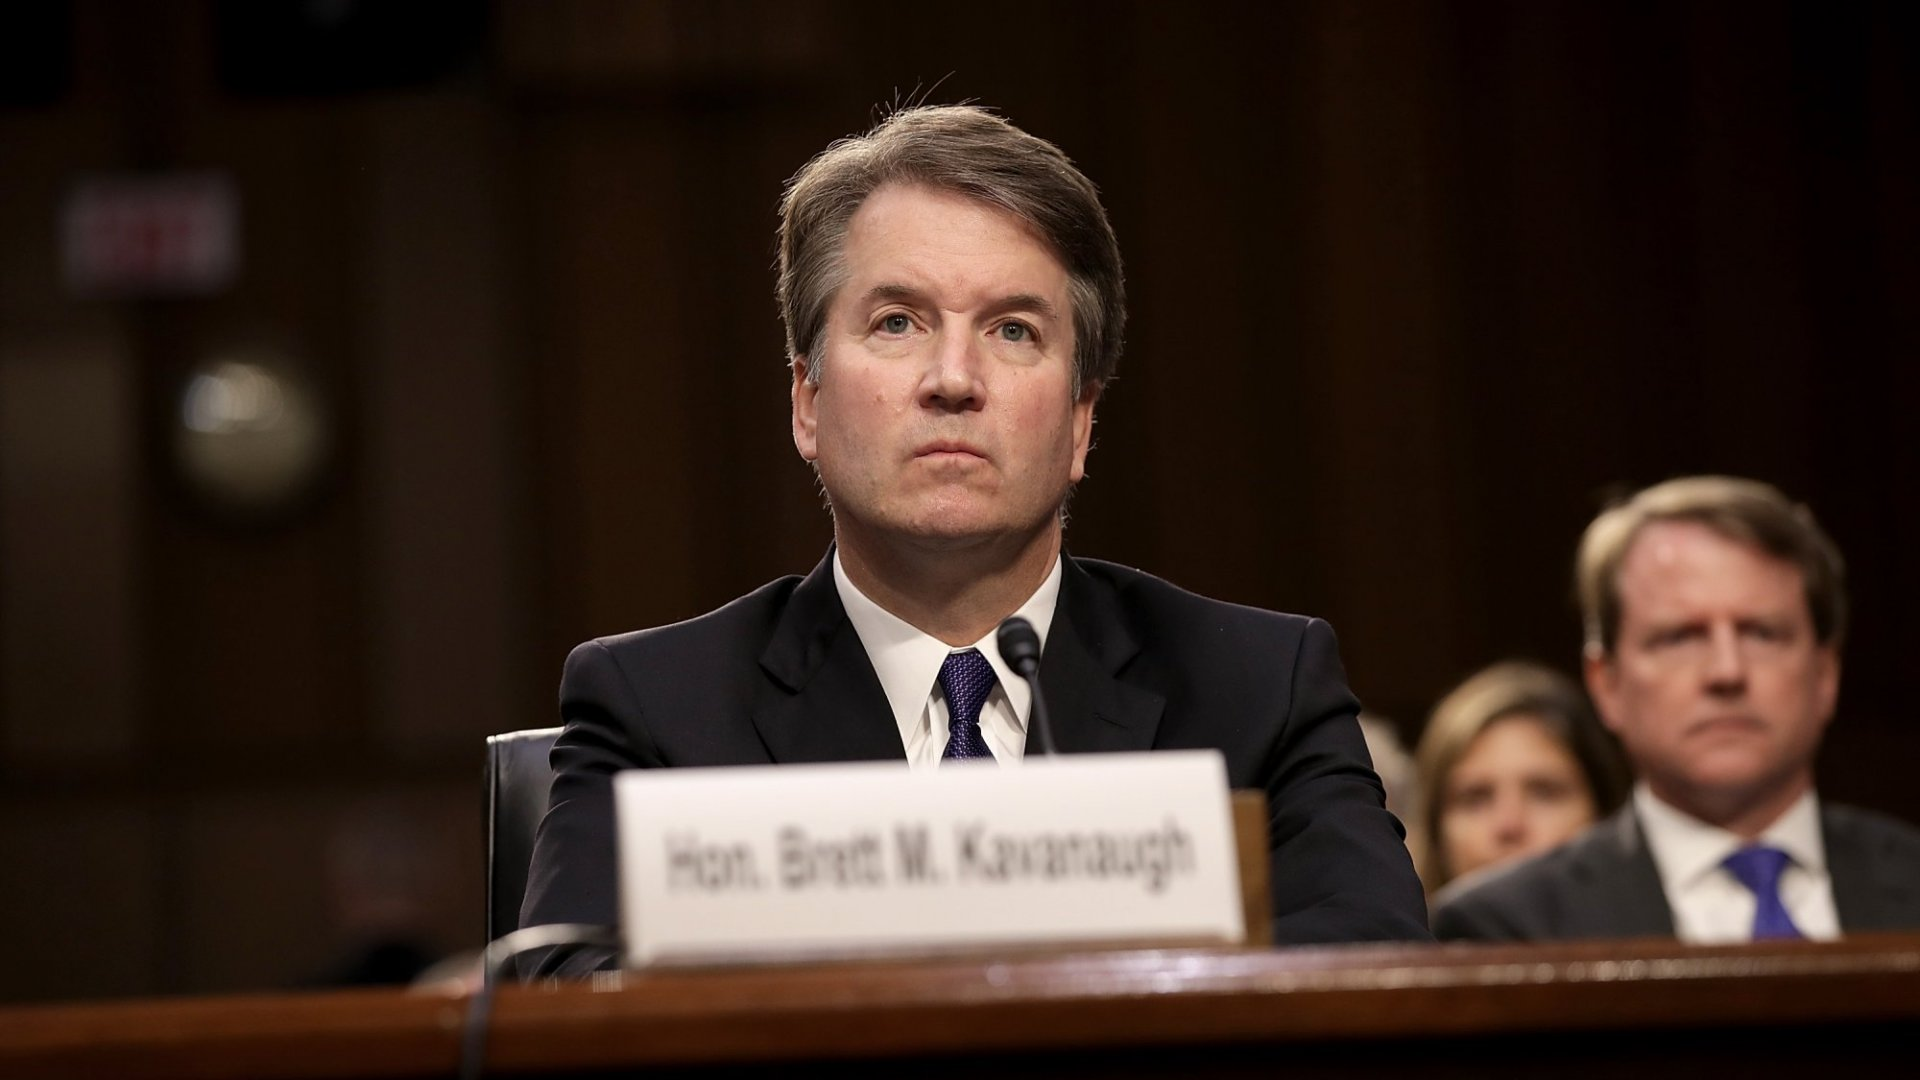 Any HR Professional Should Consider Brett Kavanaugh's Approach a Nightmare. Here's Why